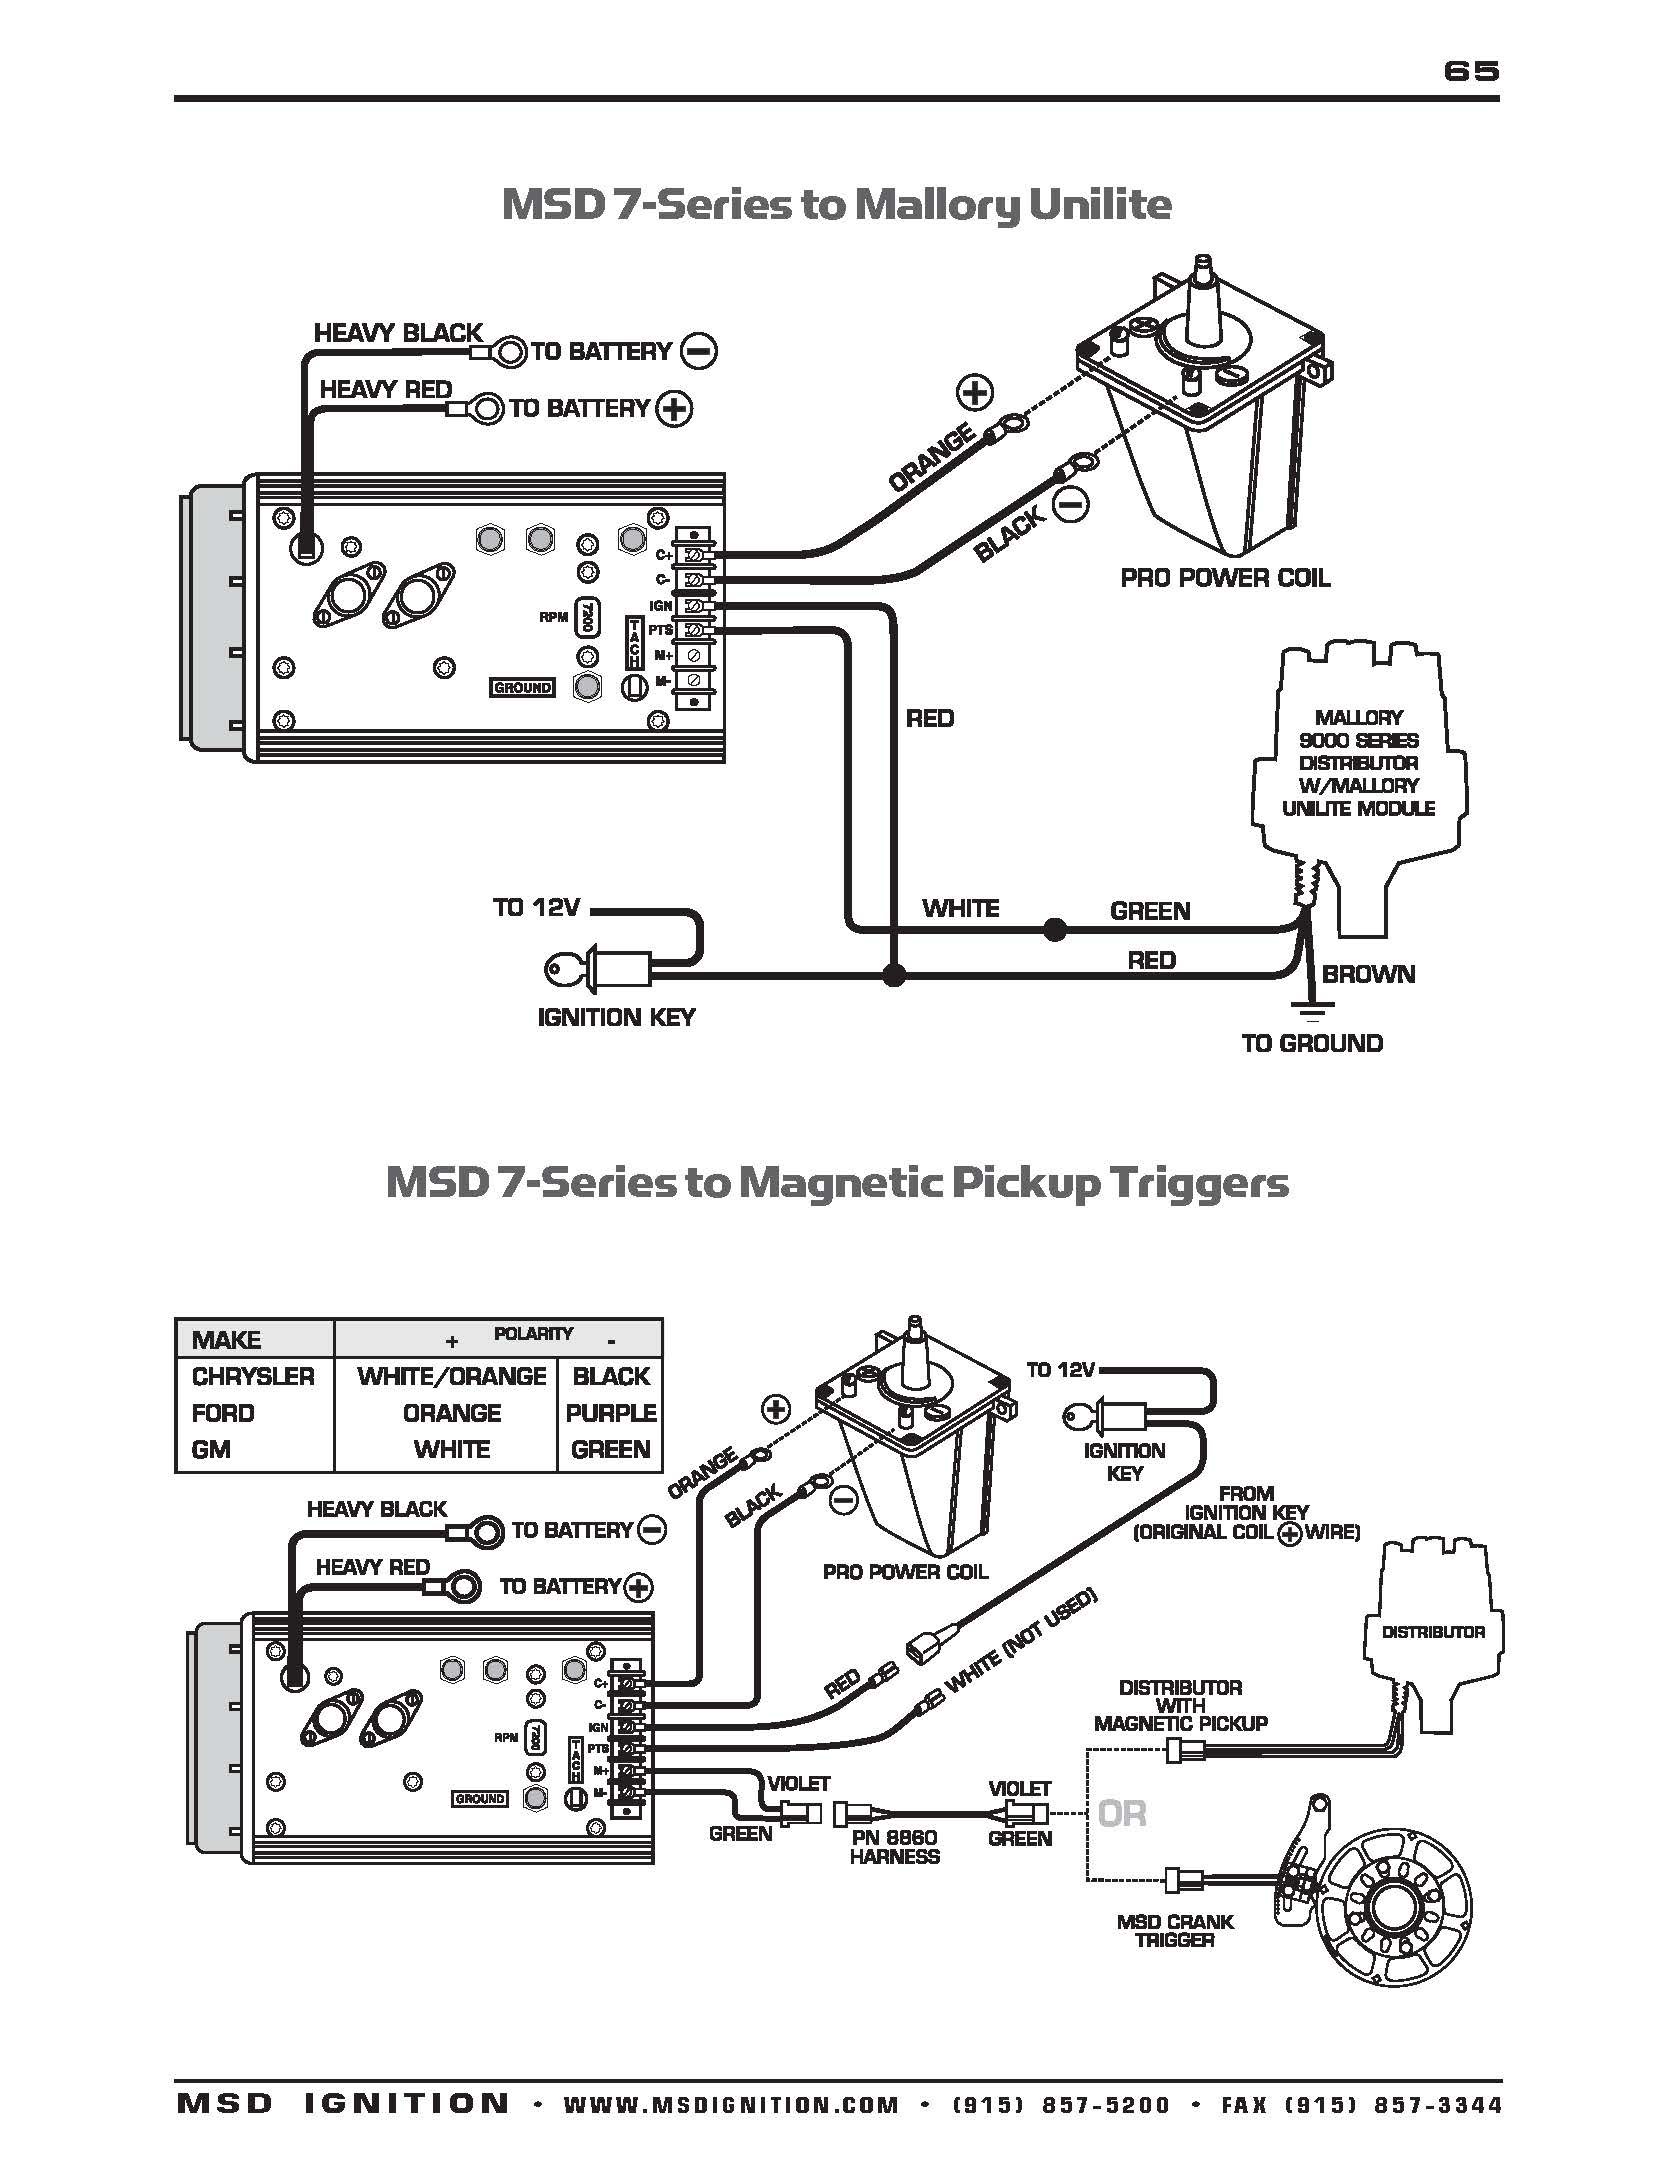 Msd Ignition Wiring Diagram For 351 - Wiring Diagram Blog - Msd Distributor Wiring Diagram